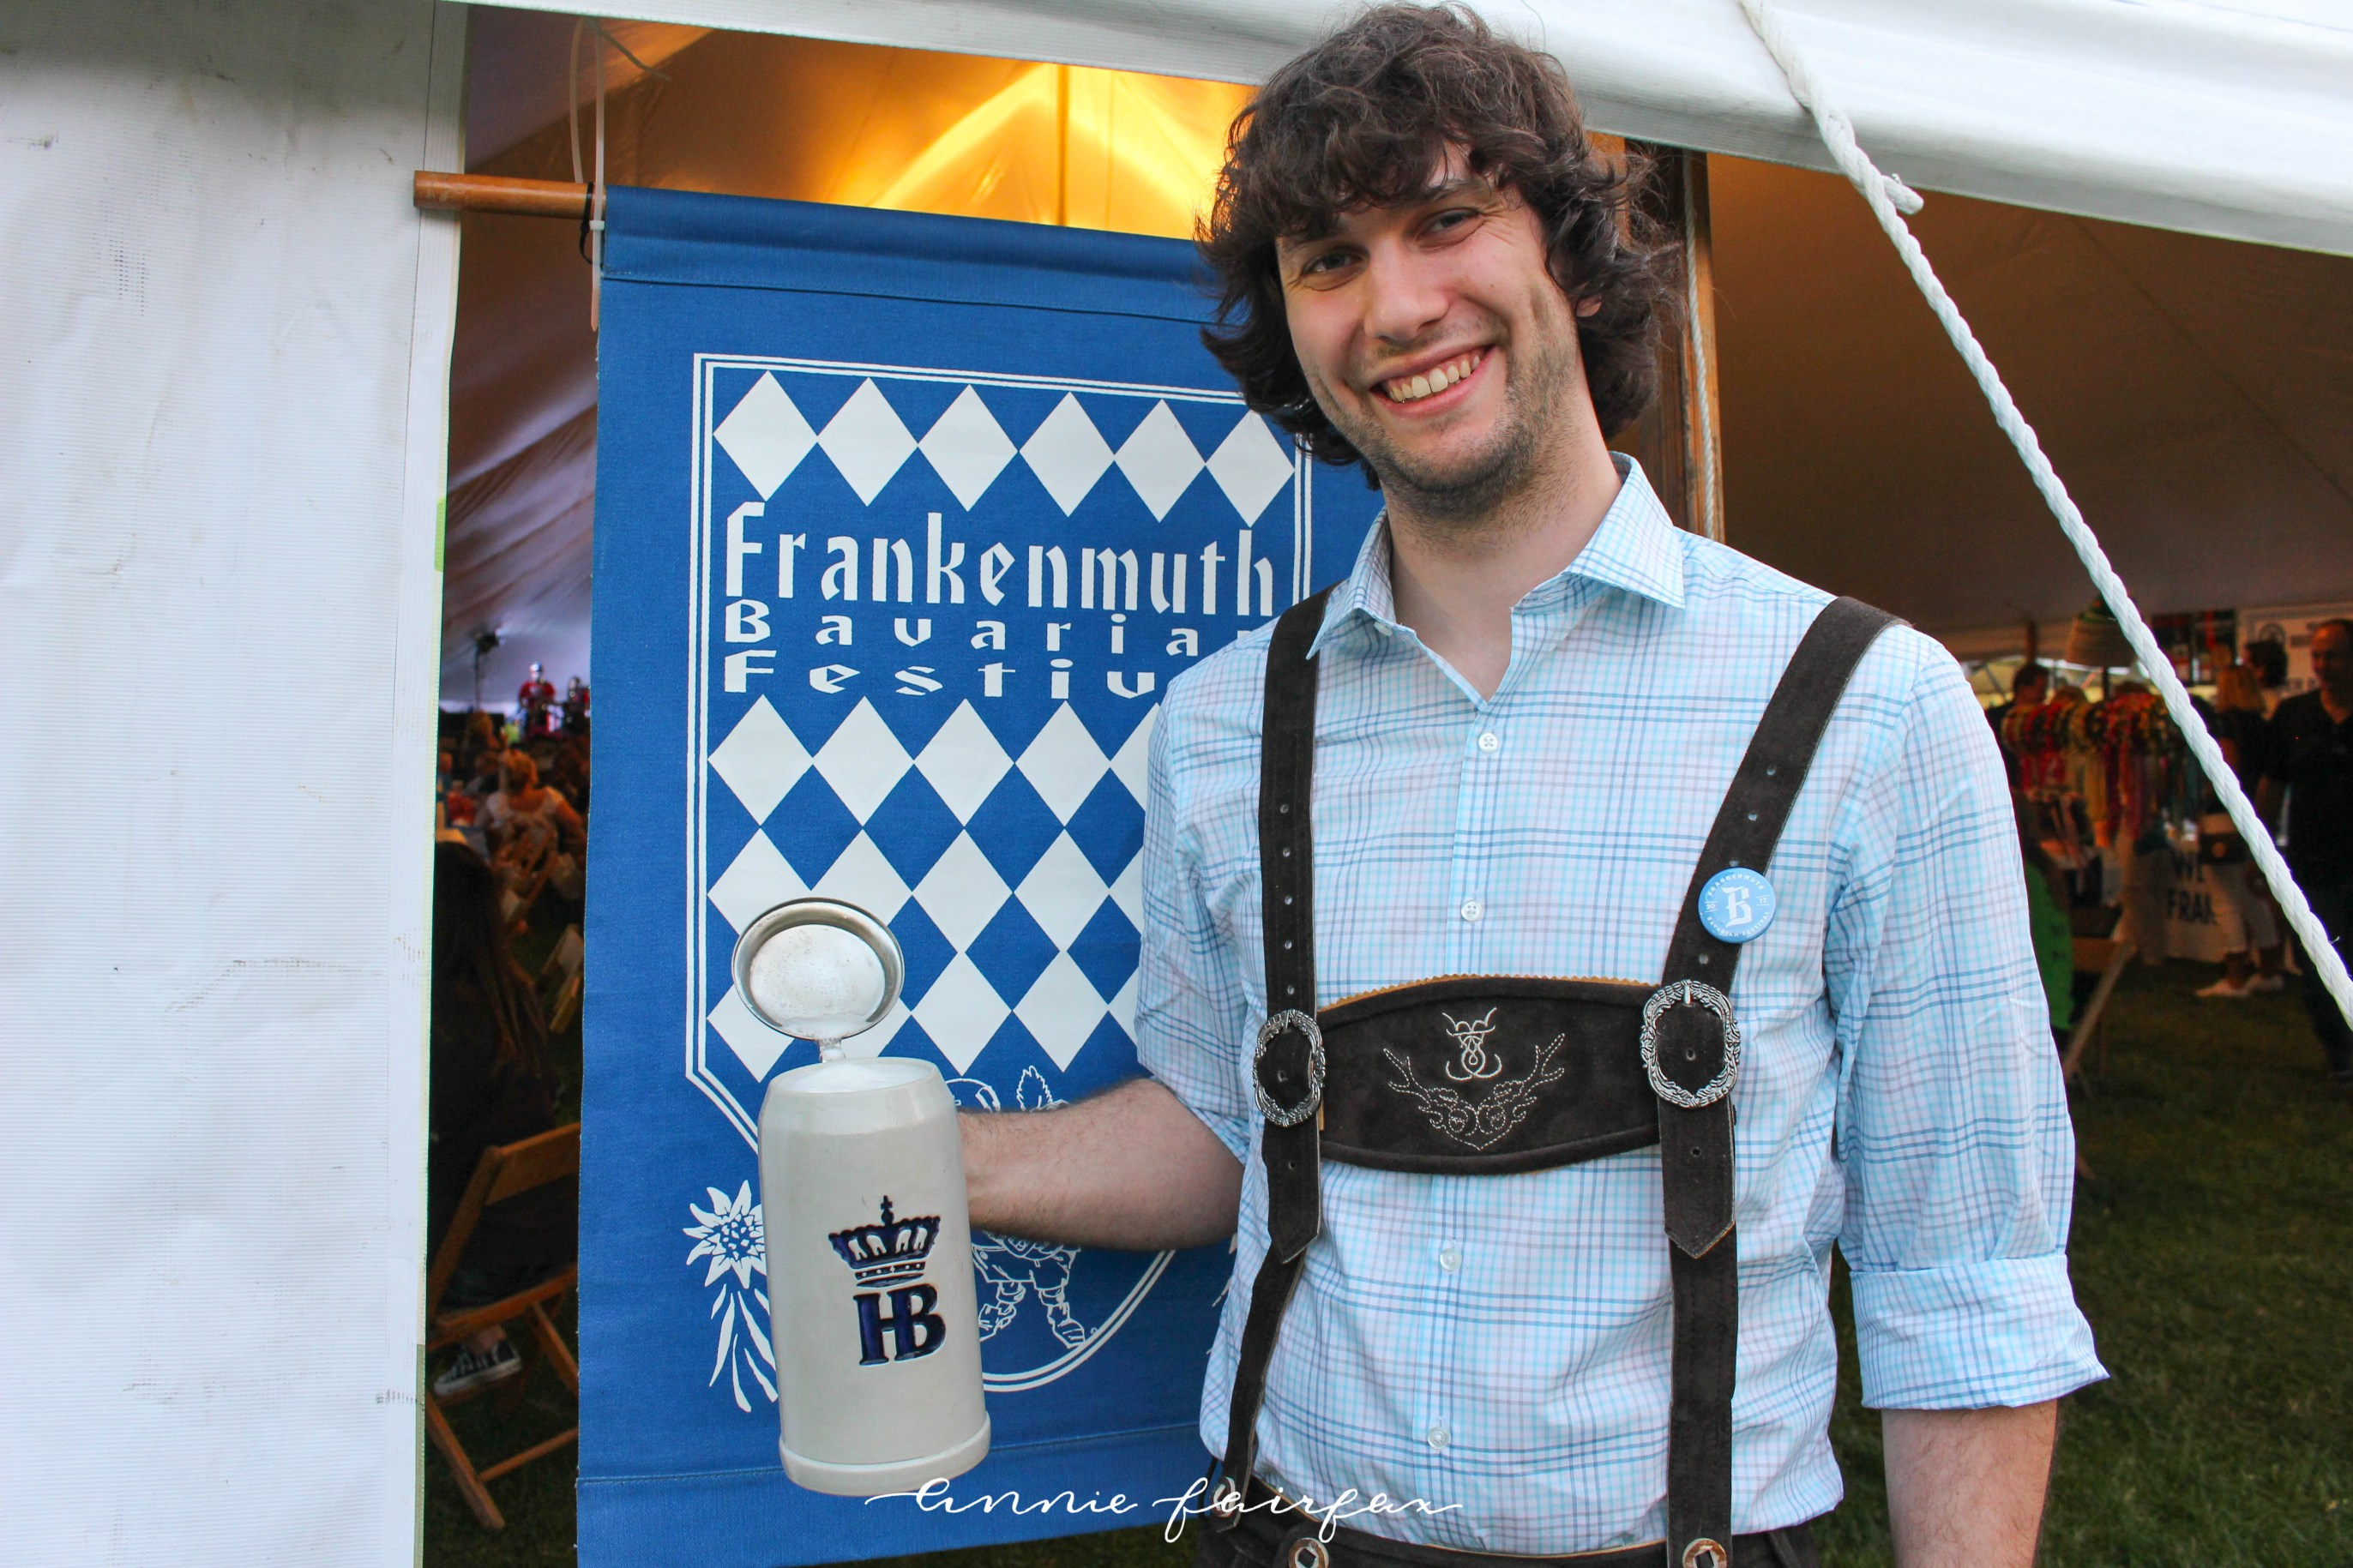 Frankenmuth Bavarian Festival Michigan Tourism German Lederhosen Dirndl Dress